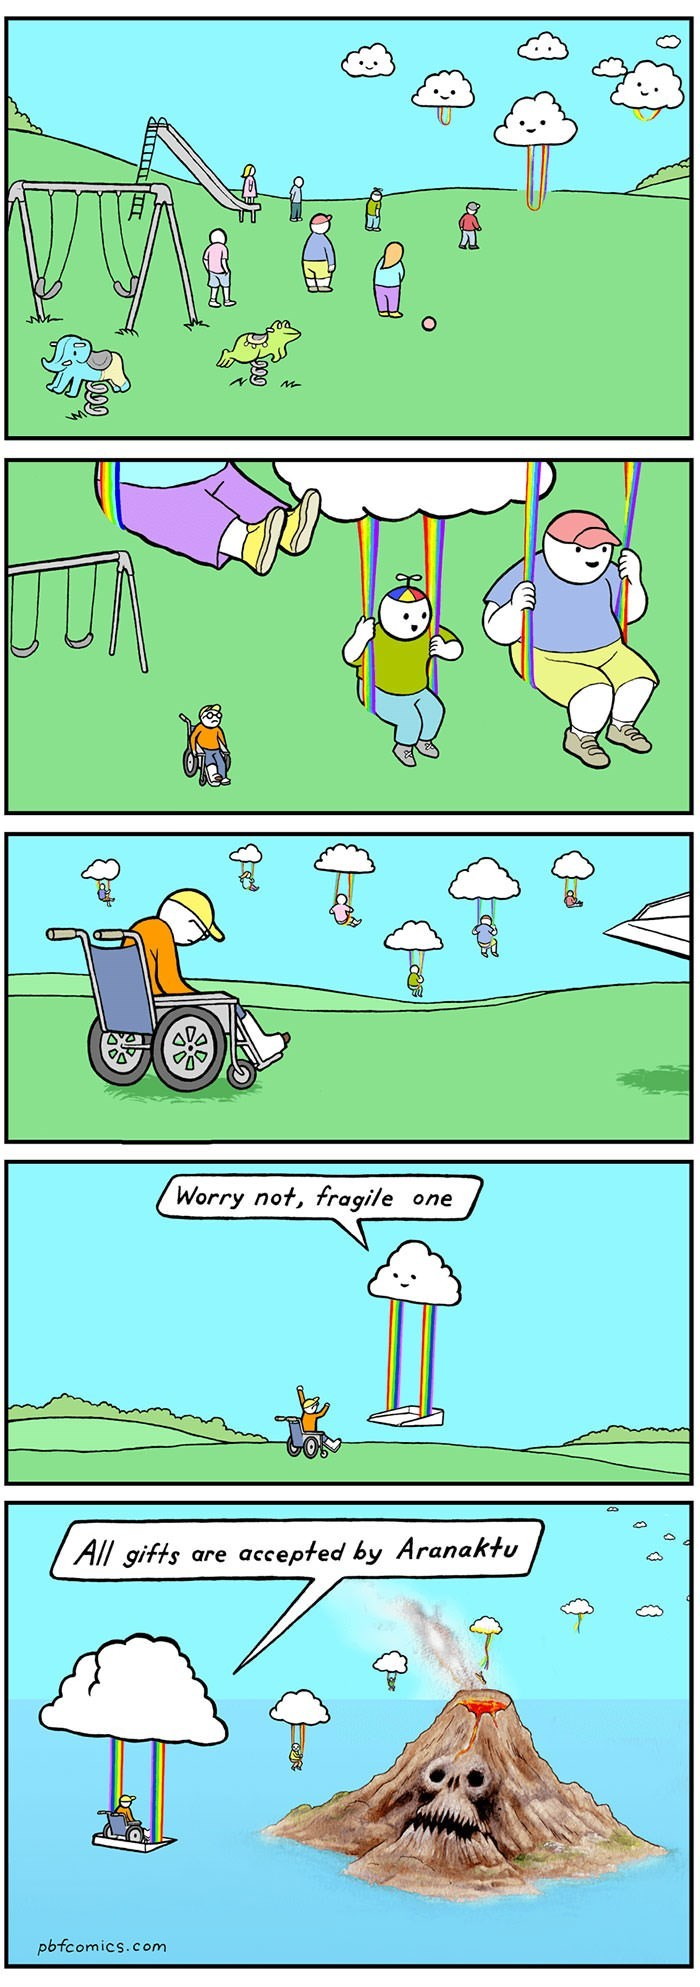 comic about clouds collecting children, including disabled ones, to sacrifice to volcano god